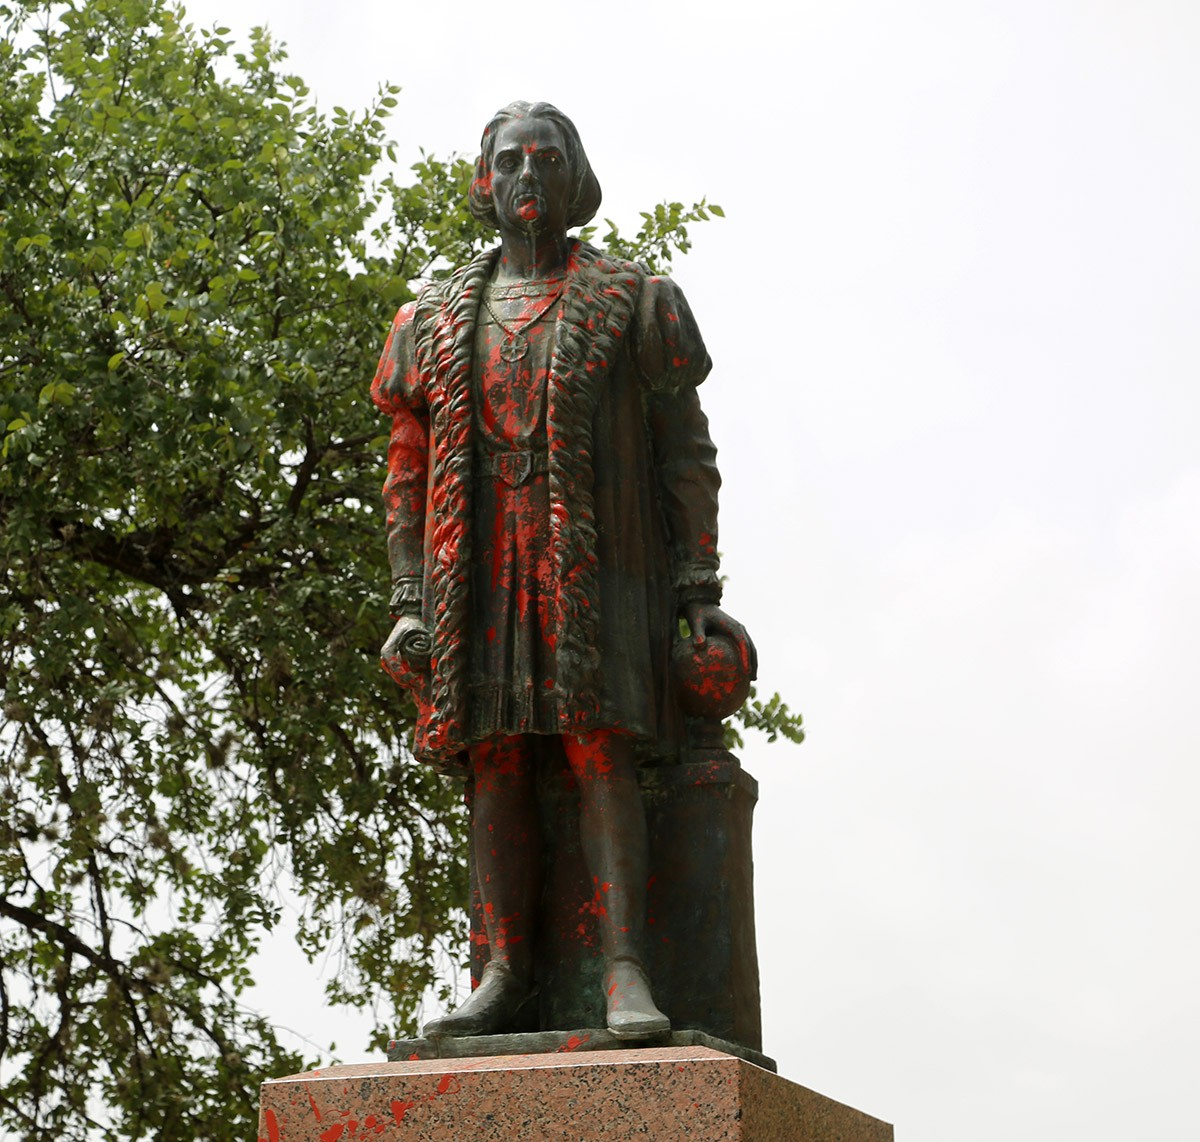 The Christopher Columbus statue is splattered in red paint Saturday, June 27, 2020, at Columbus Park, 200 Columbus St. Photo by Ben Olivo | Heron